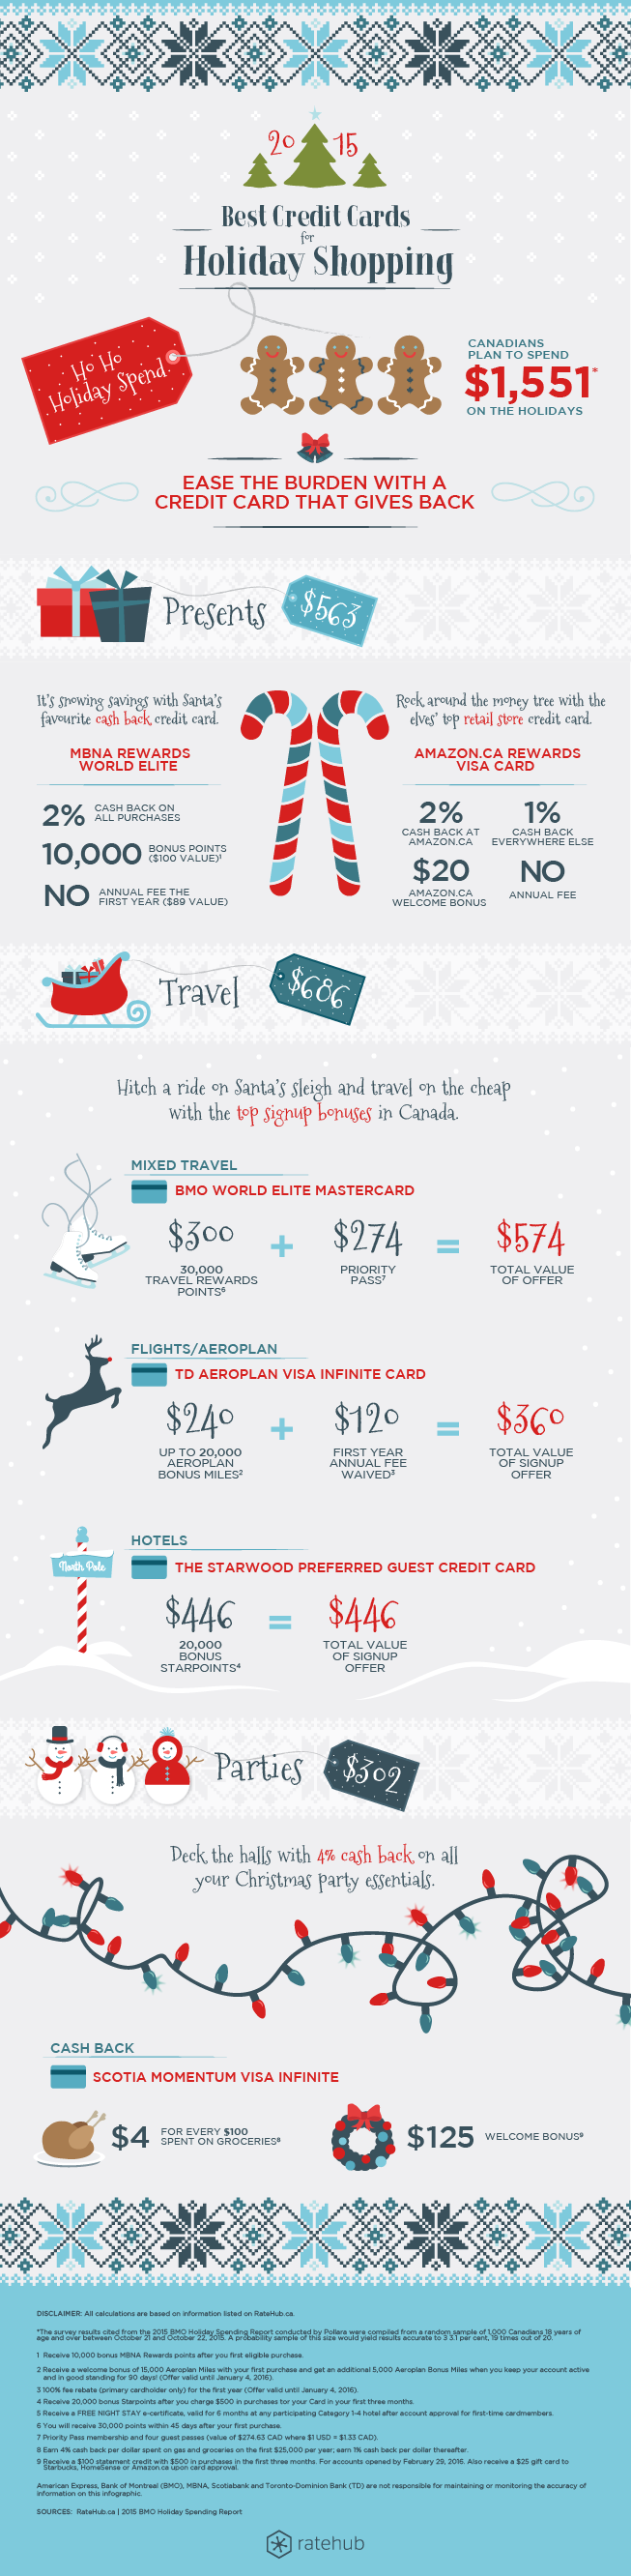 infographic-best-credit-cards-for-holiday-shopping